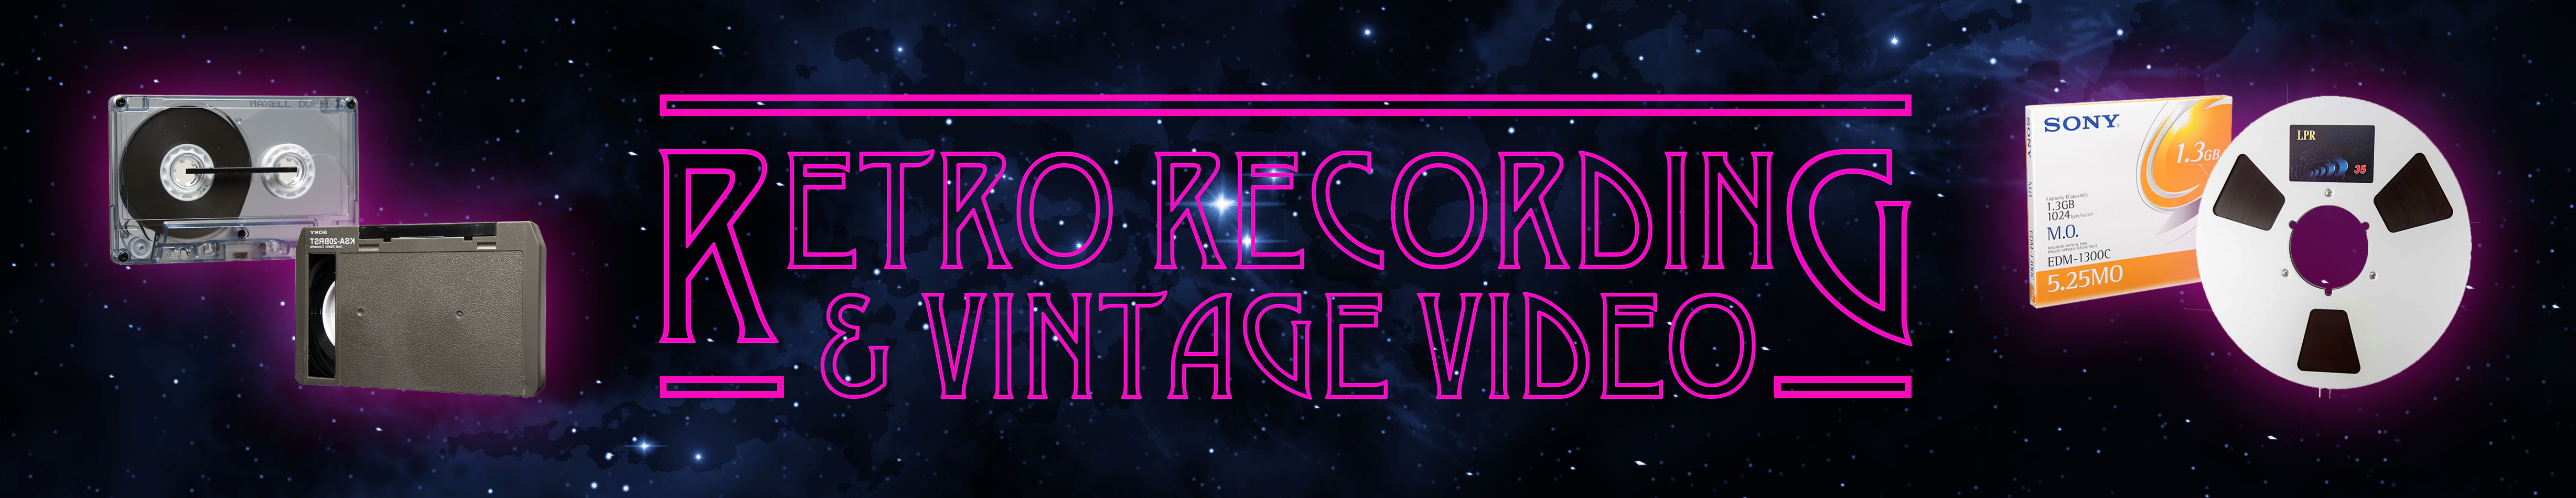 Retro Recording & Vintage Video